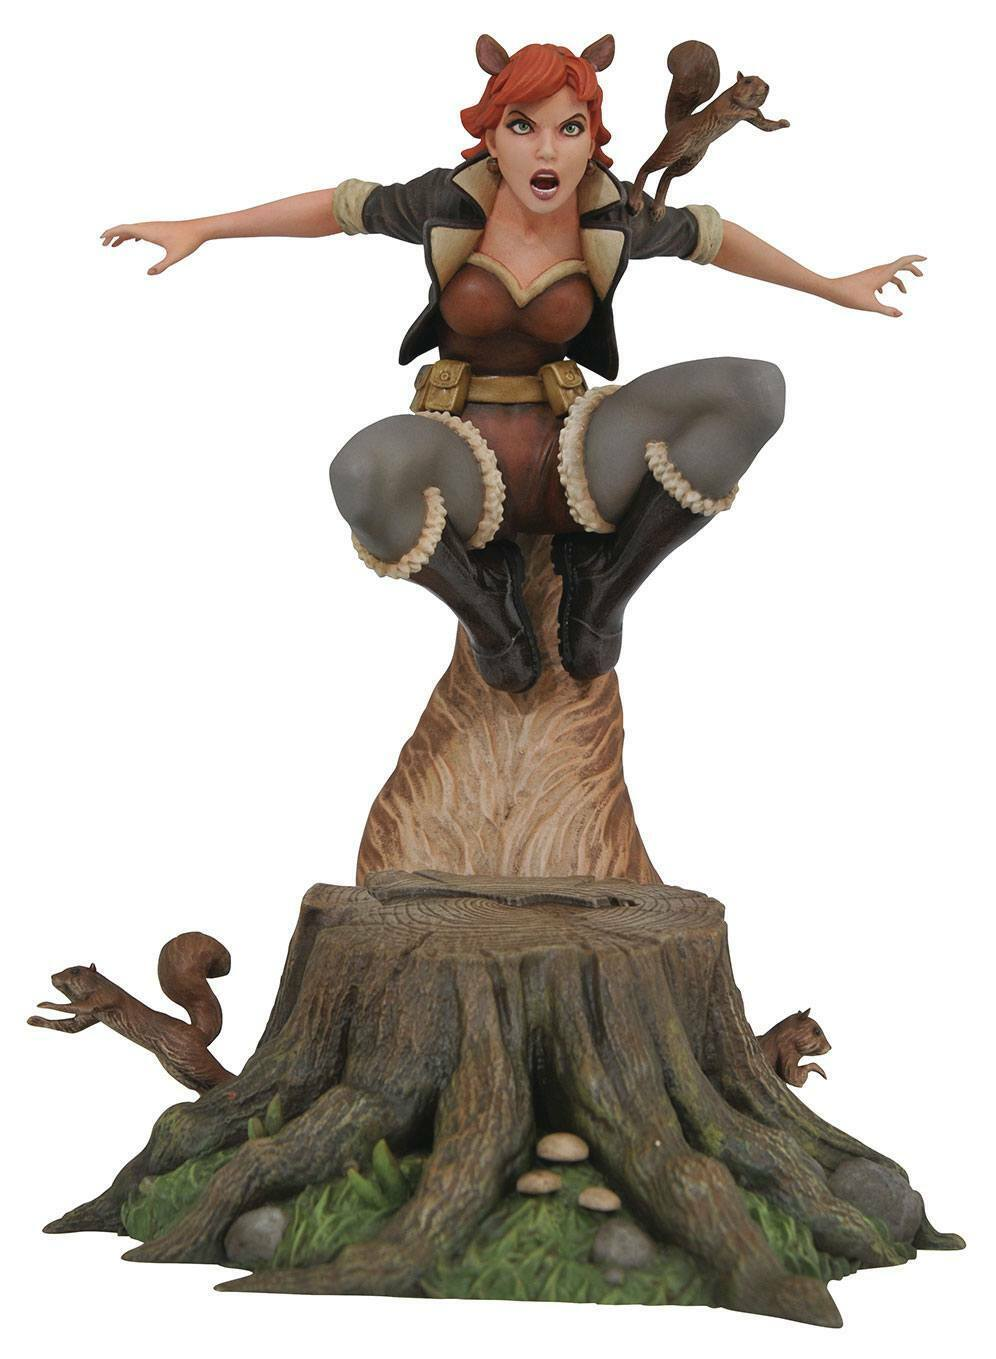 SQUIRELL GIRL STATUE MARVEL COMIC GALLERY DIAMOND SELECT 25 CM